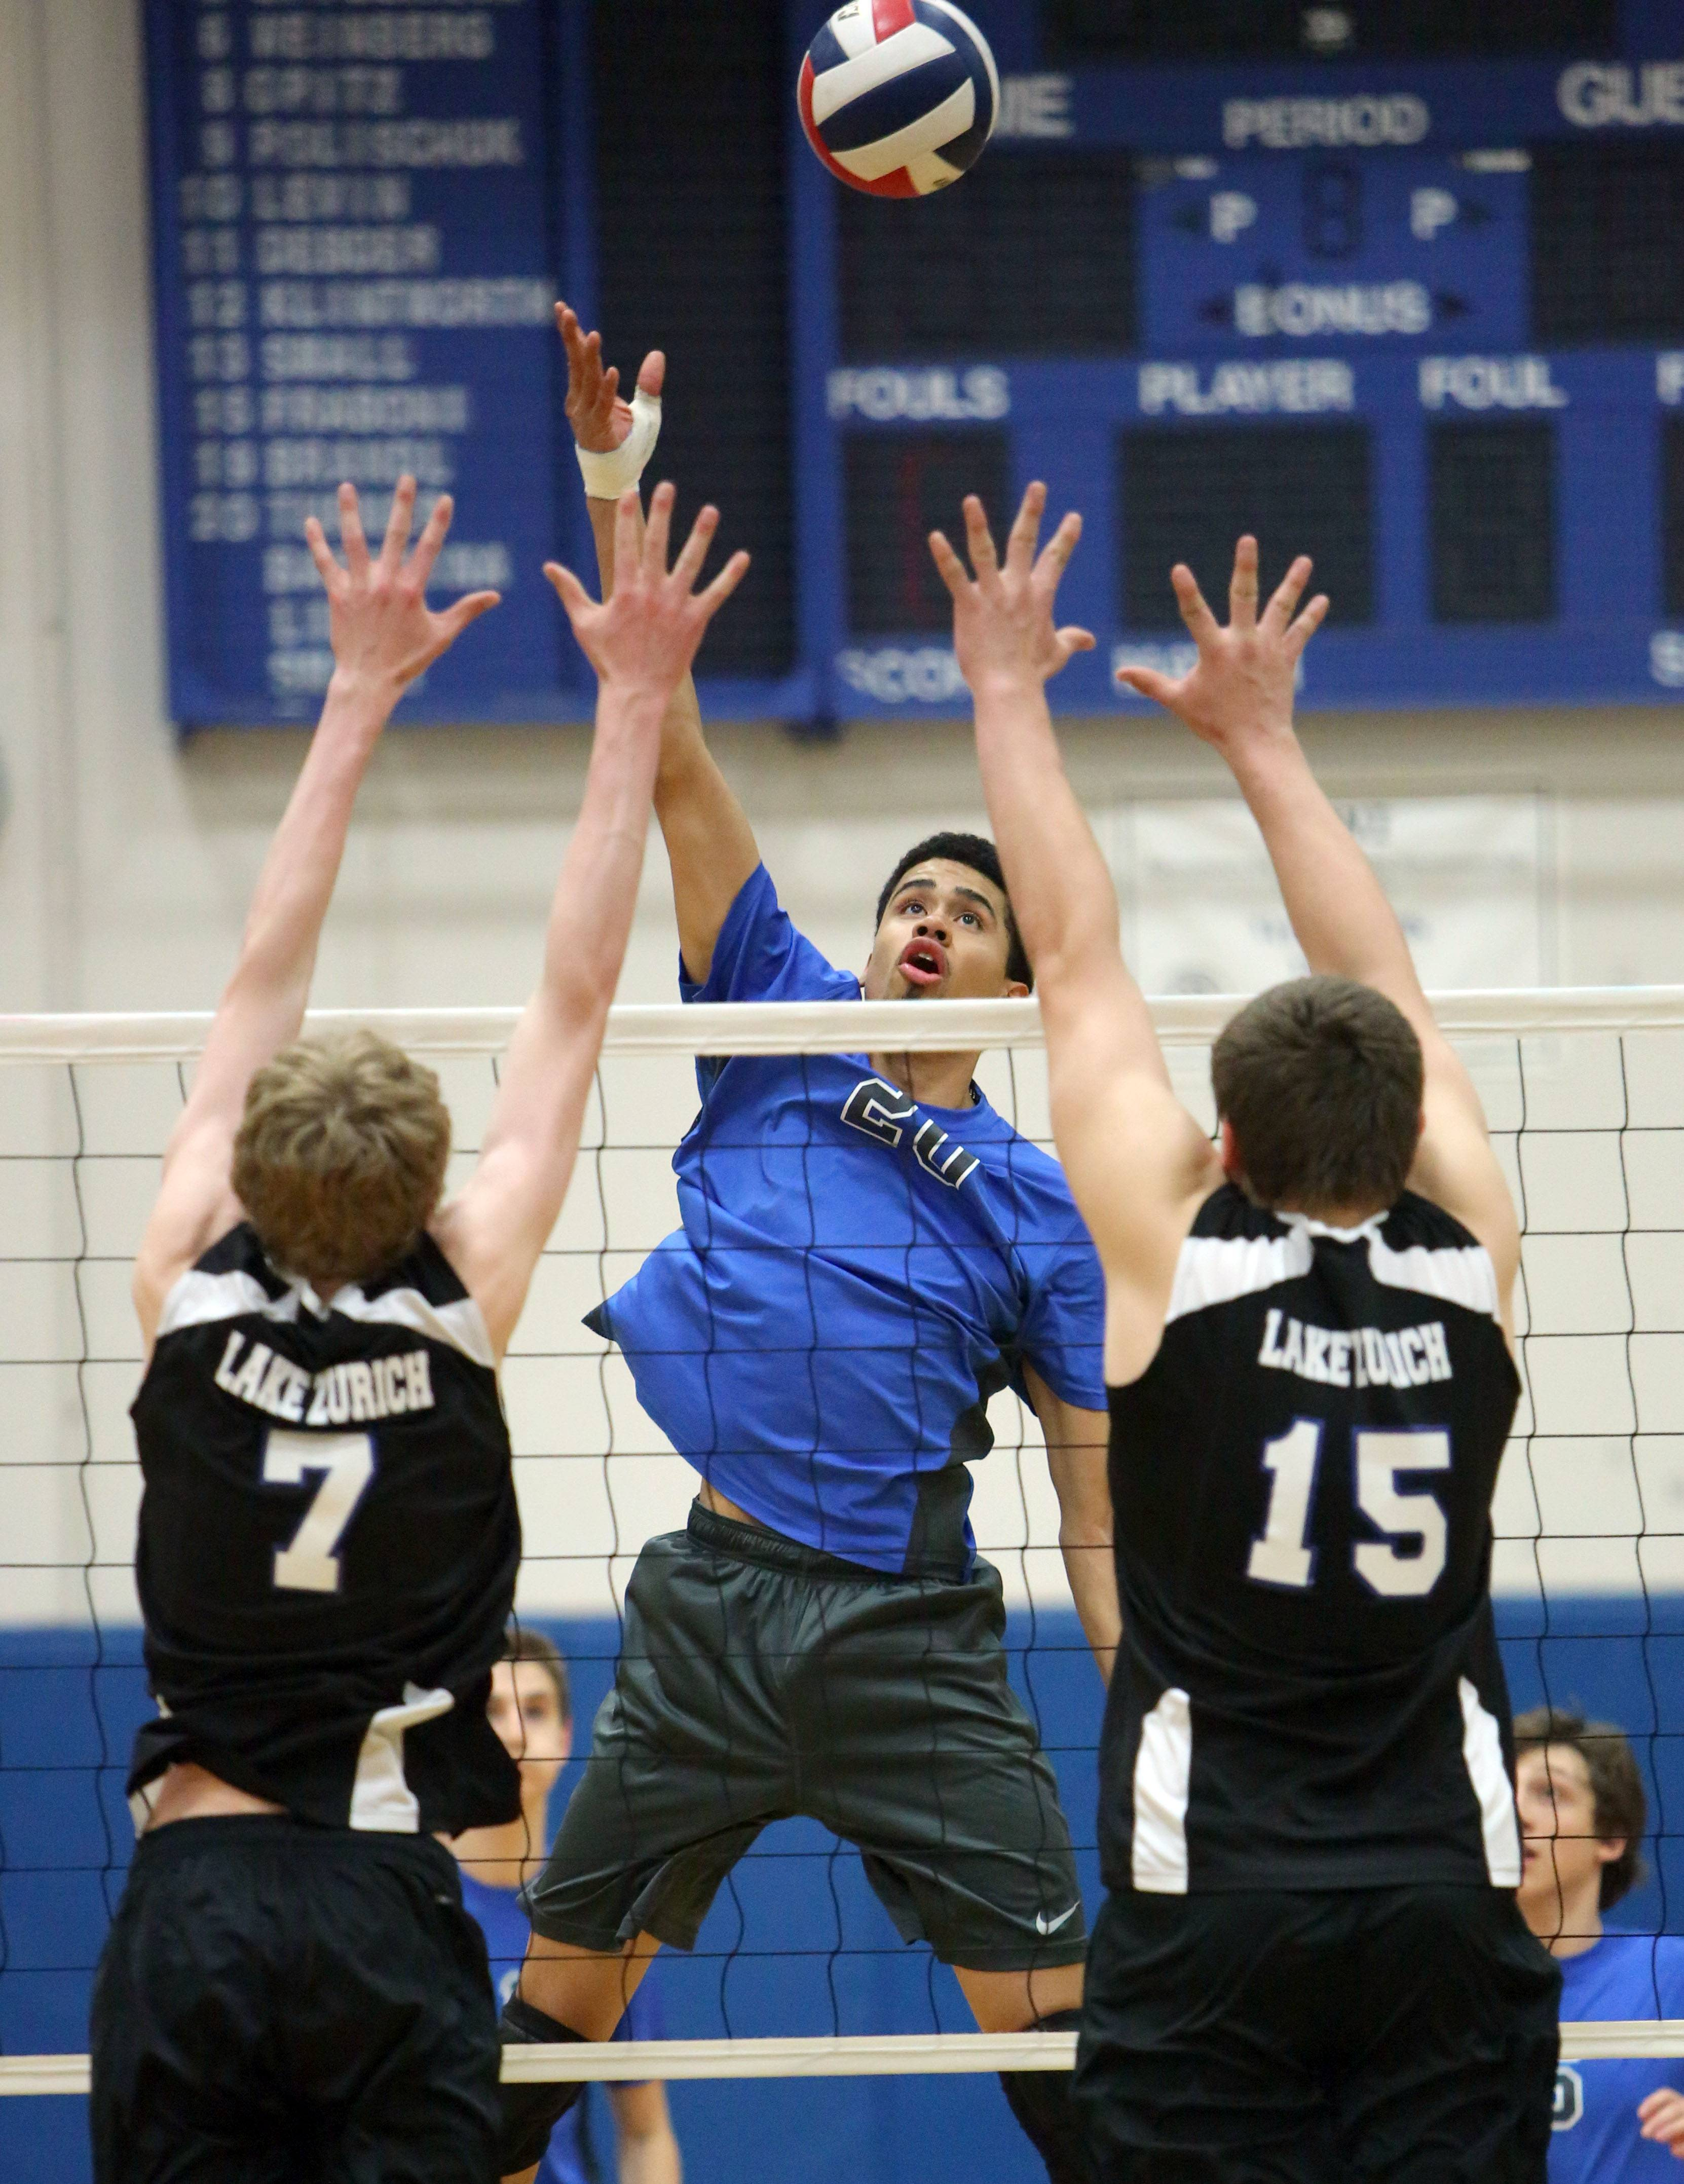 Vernon Hills' Lem Turner, middle, meets Lake Zurich's Matt Carmody, left, and Nate Amos at the net Wednesday at Vernon Hills.